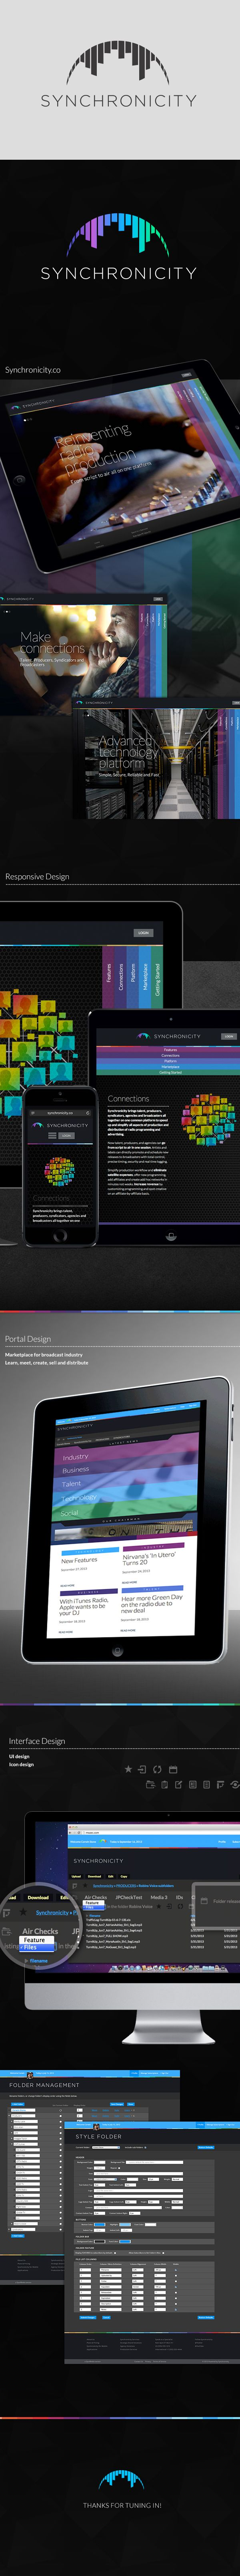 SYNCHRONICITY: Identity & Web Design on Behance